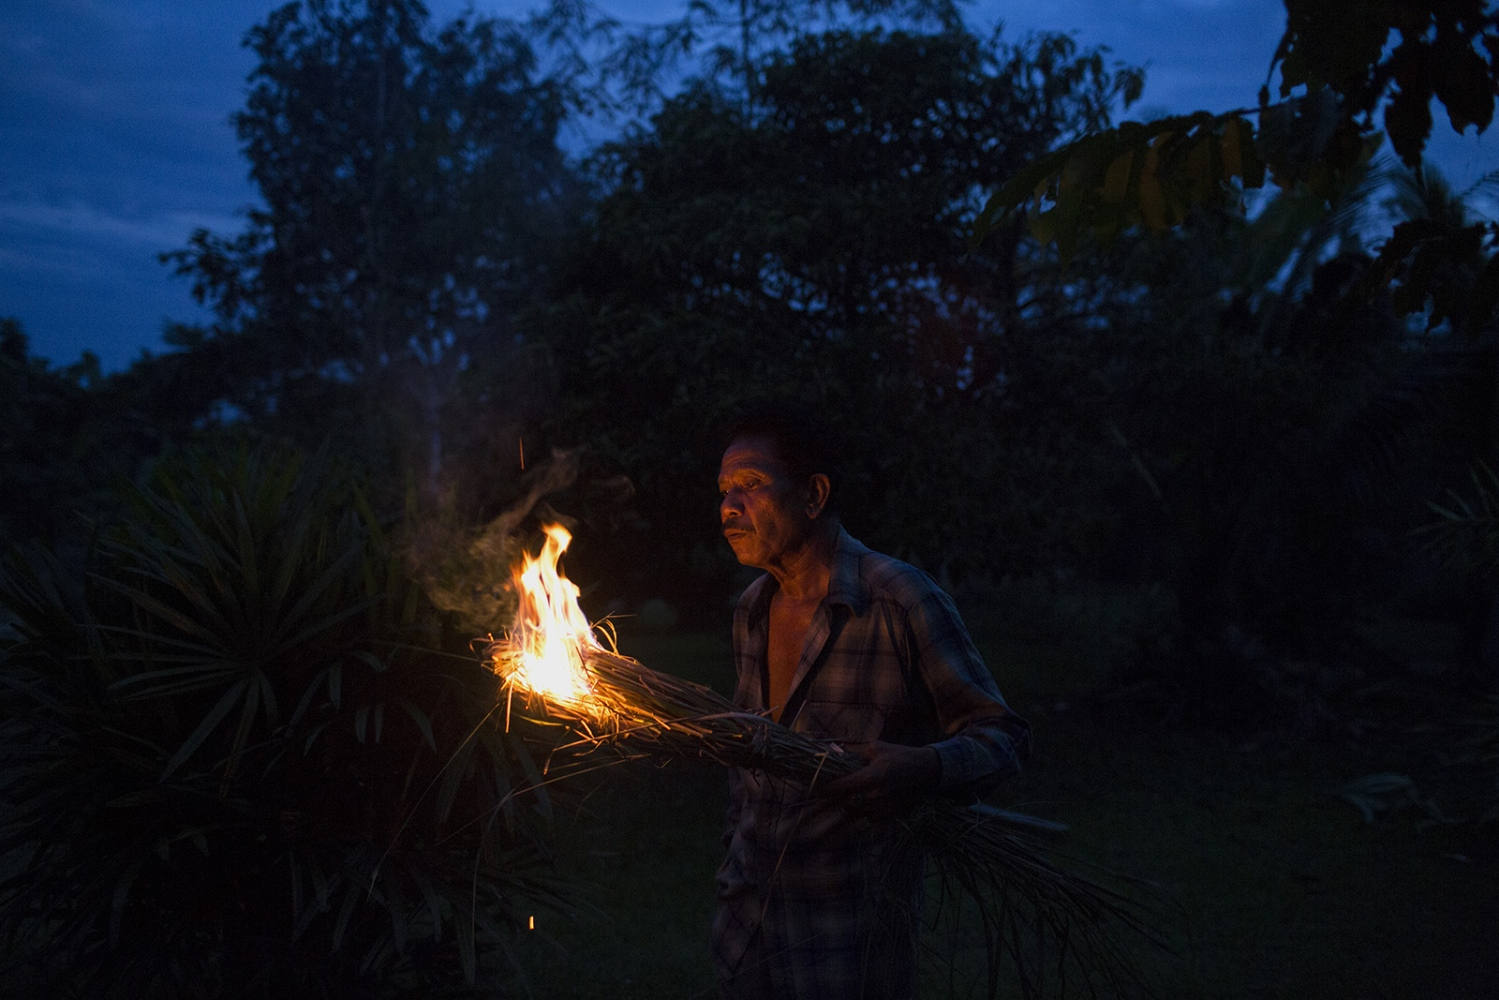 Pratip Rakhungthong, 61, lights dried lemongrass grown in the village to keep away mosquito's. December 2016.